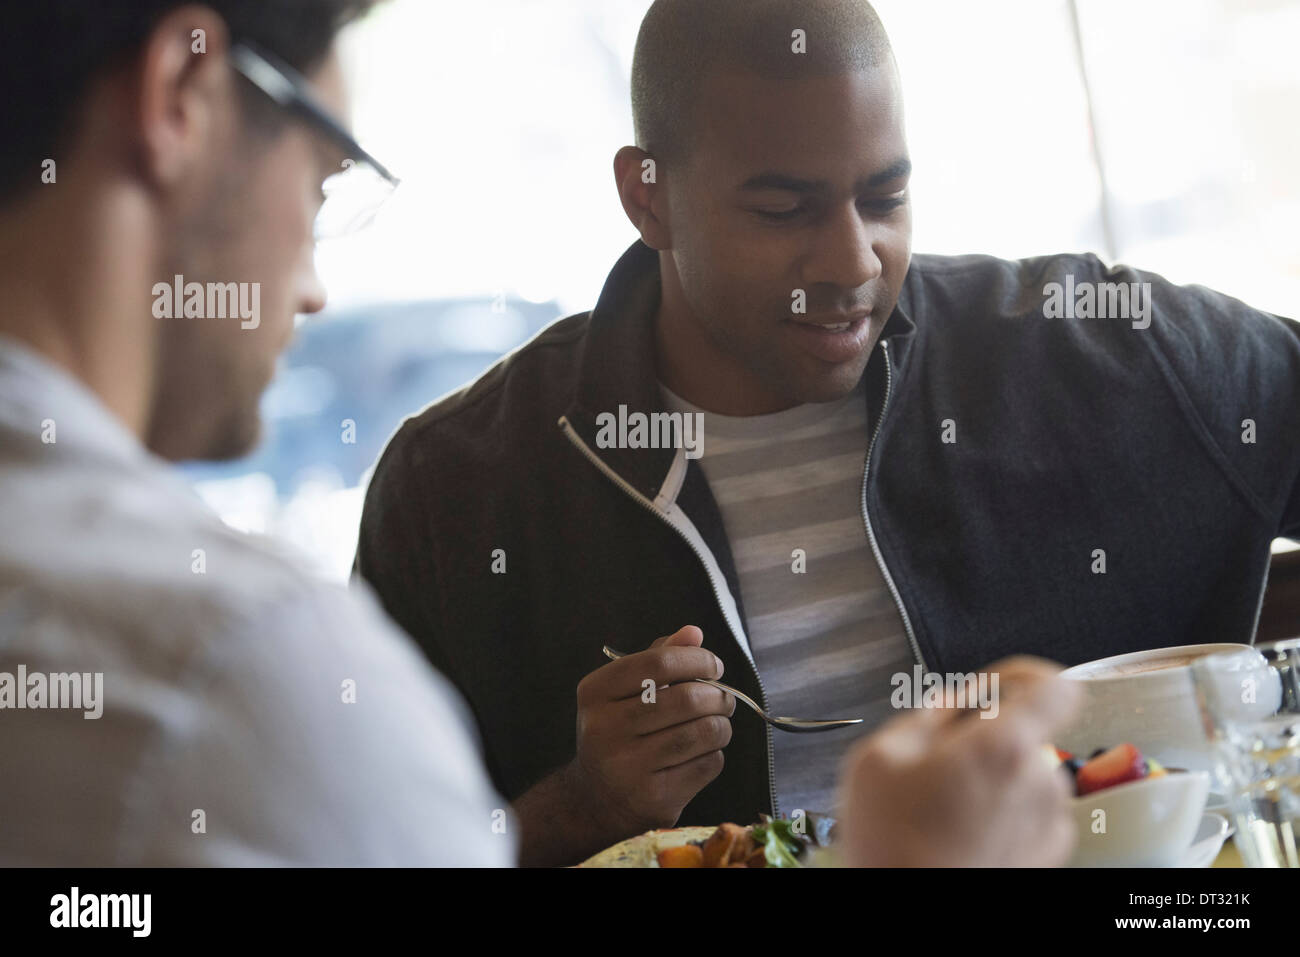 Two men seated at a cafe table having a meal - Stock Image